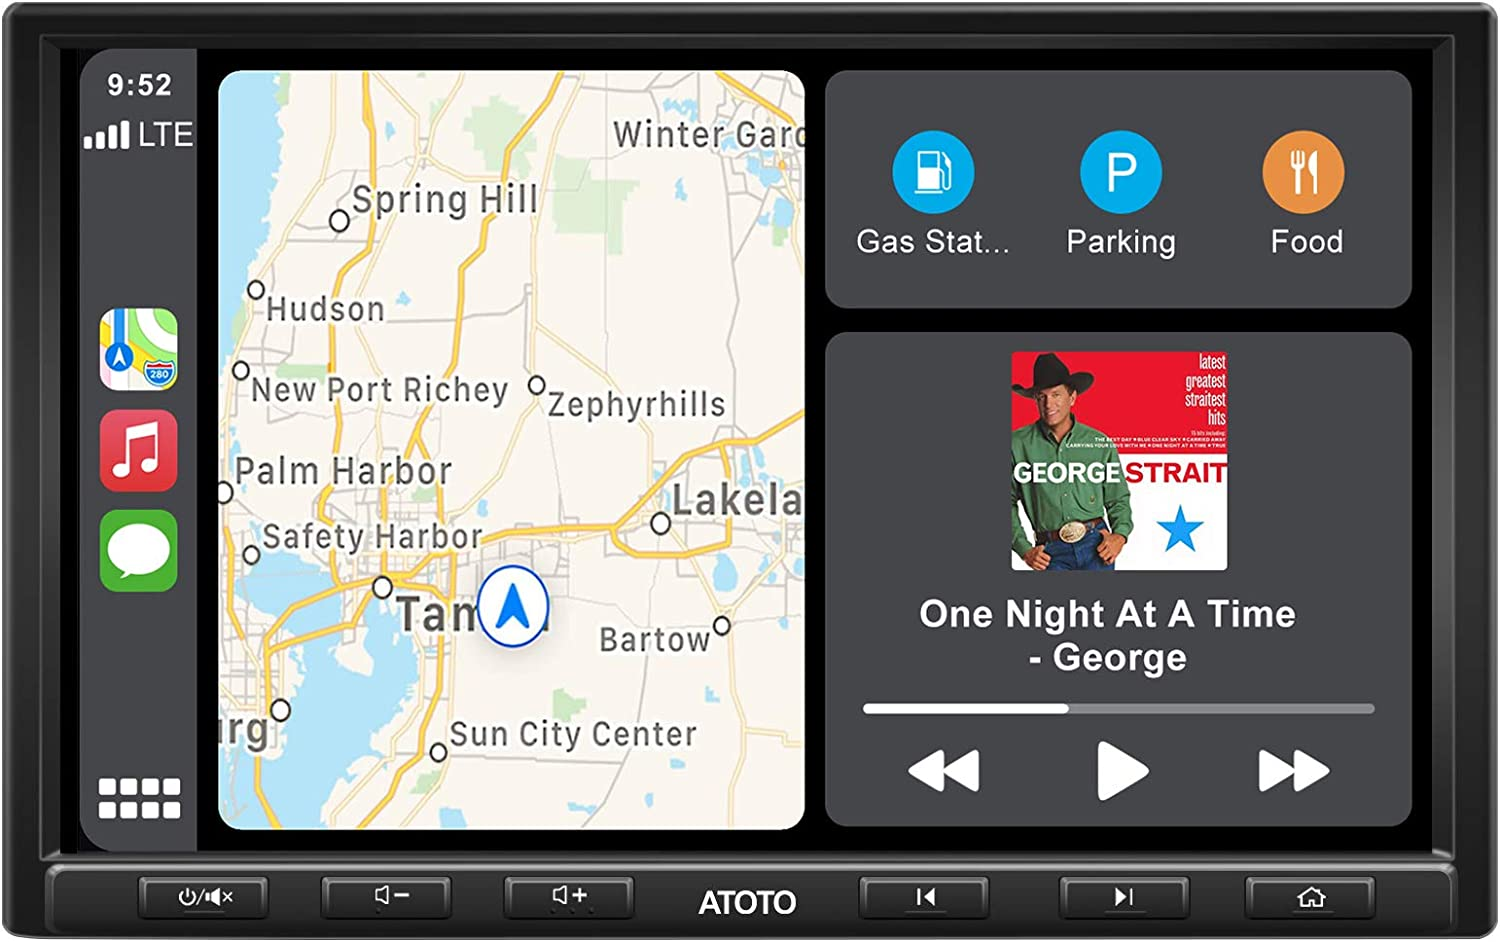 ATOTO 8inch F7G1A8PE in-Dash Video Receiver - F7 Pro CarPlay & Android Auto Receiver with Bluetooth, HD LRV(Live Rearview),Quick Charge,Phone Mirroring,USB/SD (up to 2TB Storage) (SAH08D)